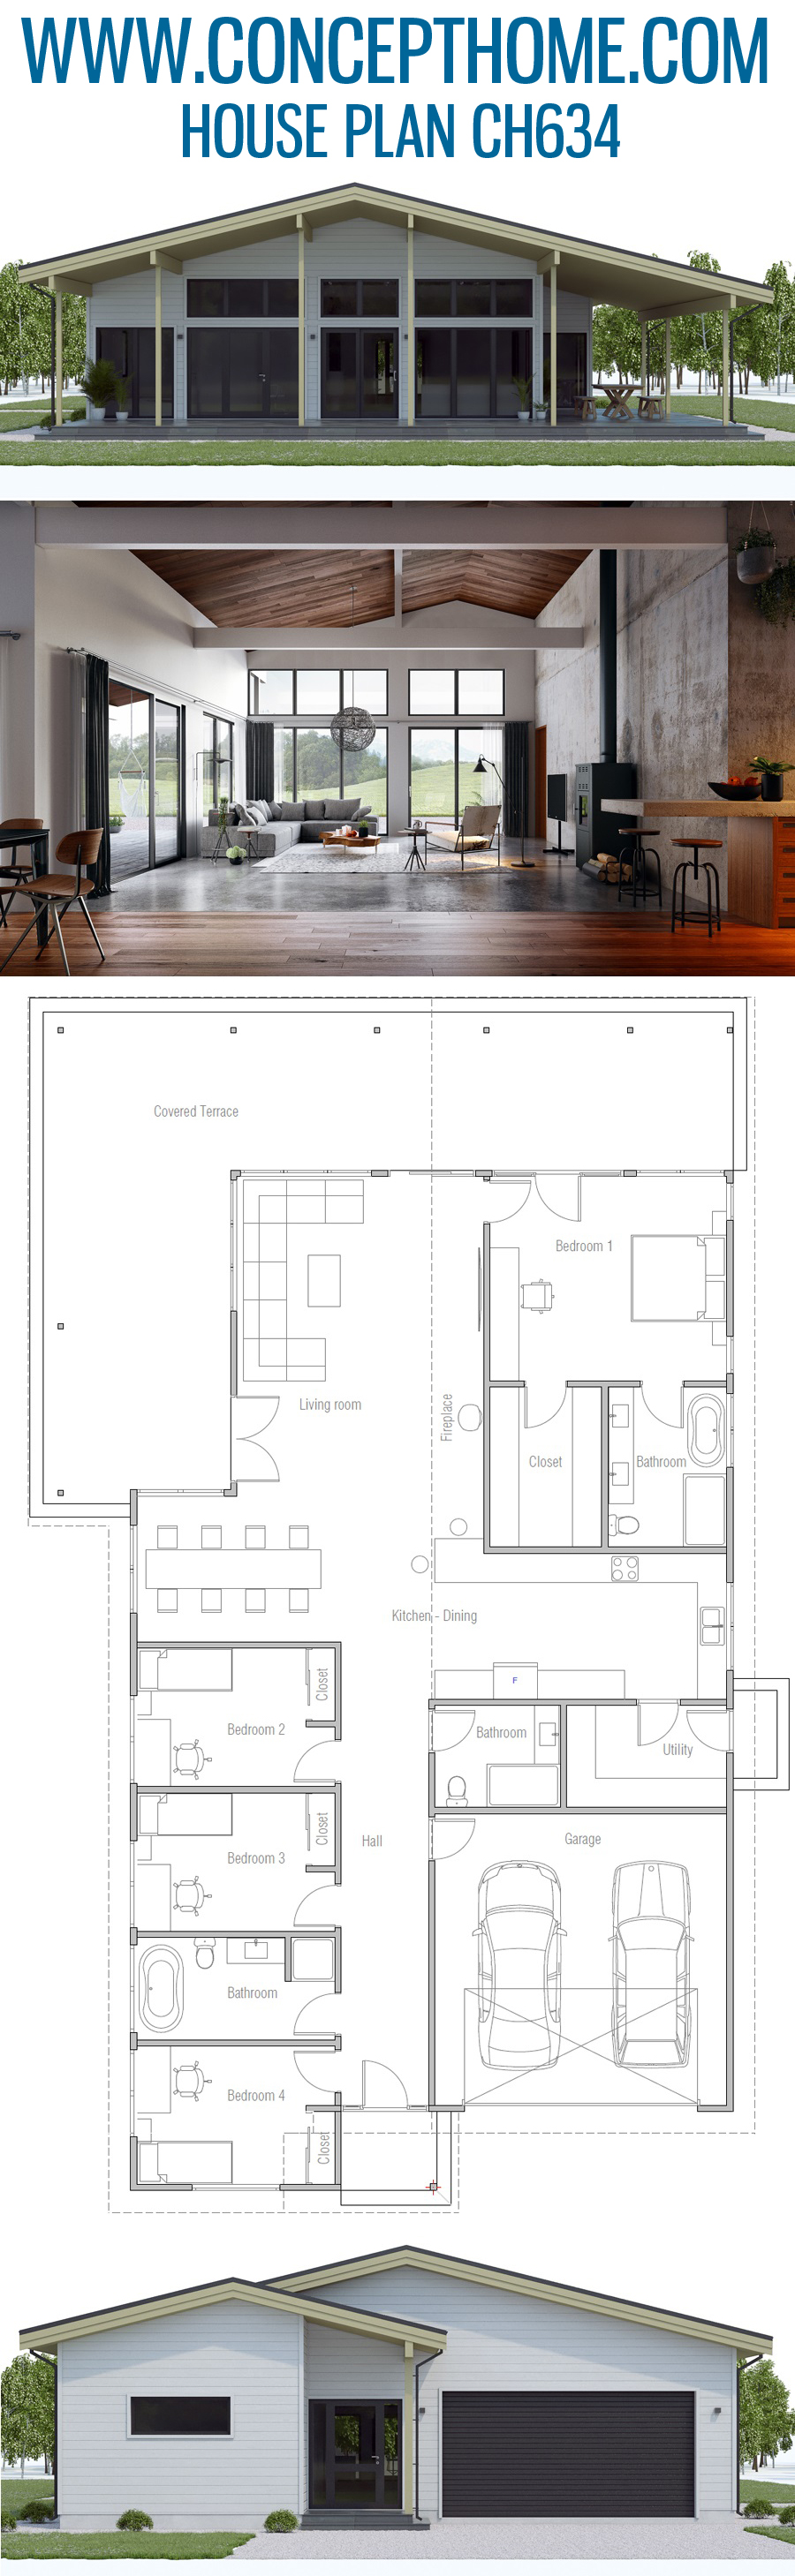 House Plan Ch634 Small House New House Plans Small House Plan